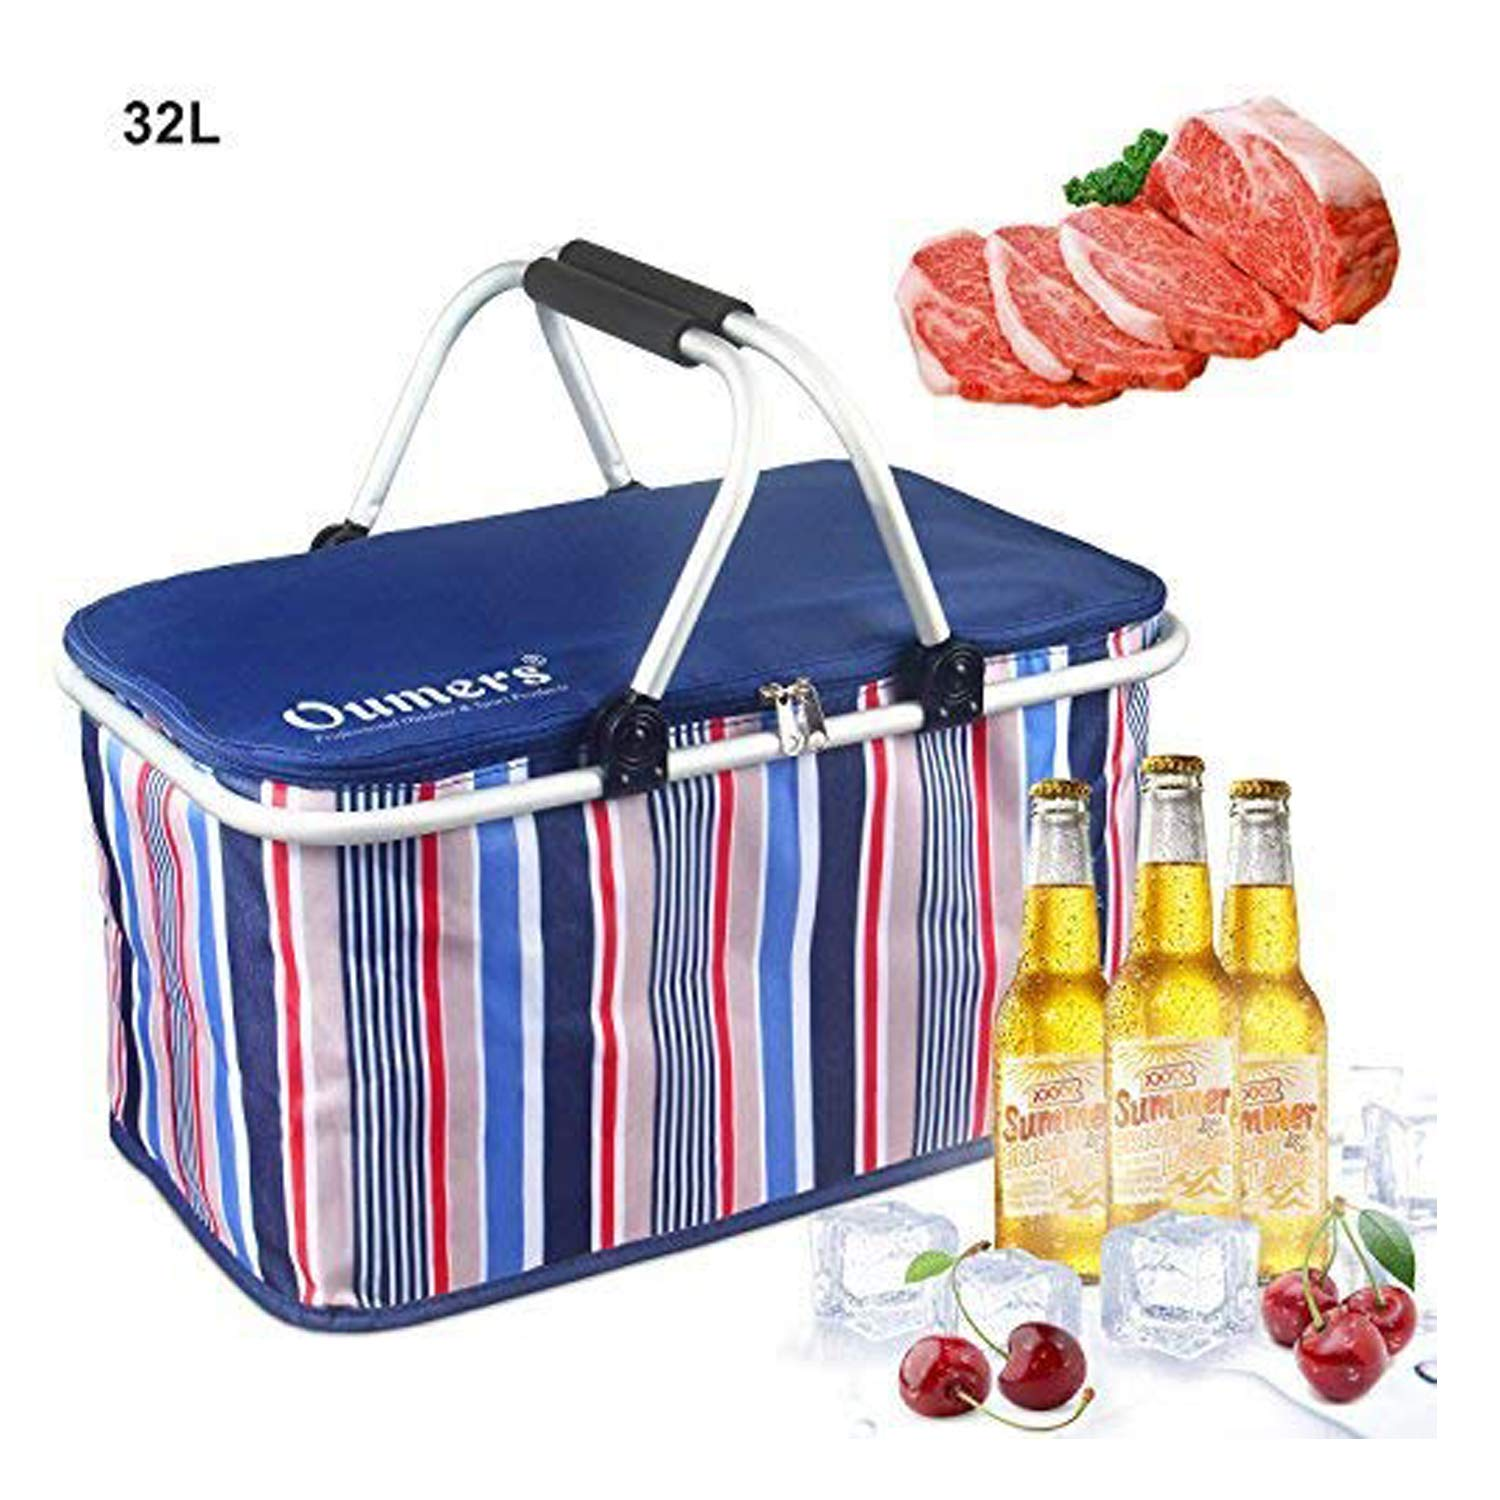 Picnic Insulated Bag, Oumers 32L Large Size Insulated Picnic Basket - BBQ Meat Drinks Cooler Bag -Folding Collapsible Cooler Basket for Family Vacations Parties Outdoor Travel, Keep Food Cold Storage by Oumers